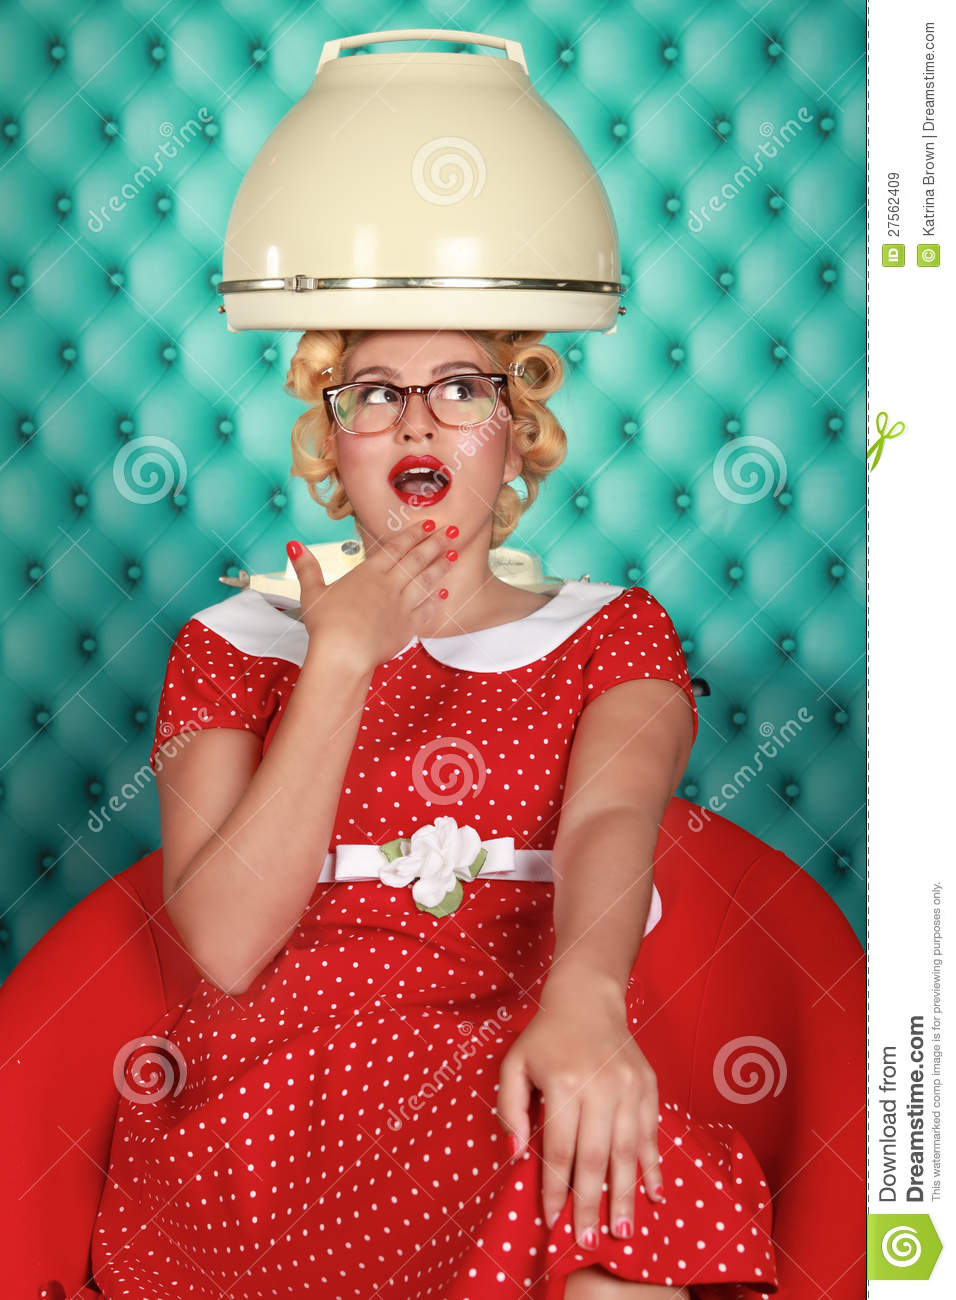 Stylish Retro Woman Having Her Hair Dried